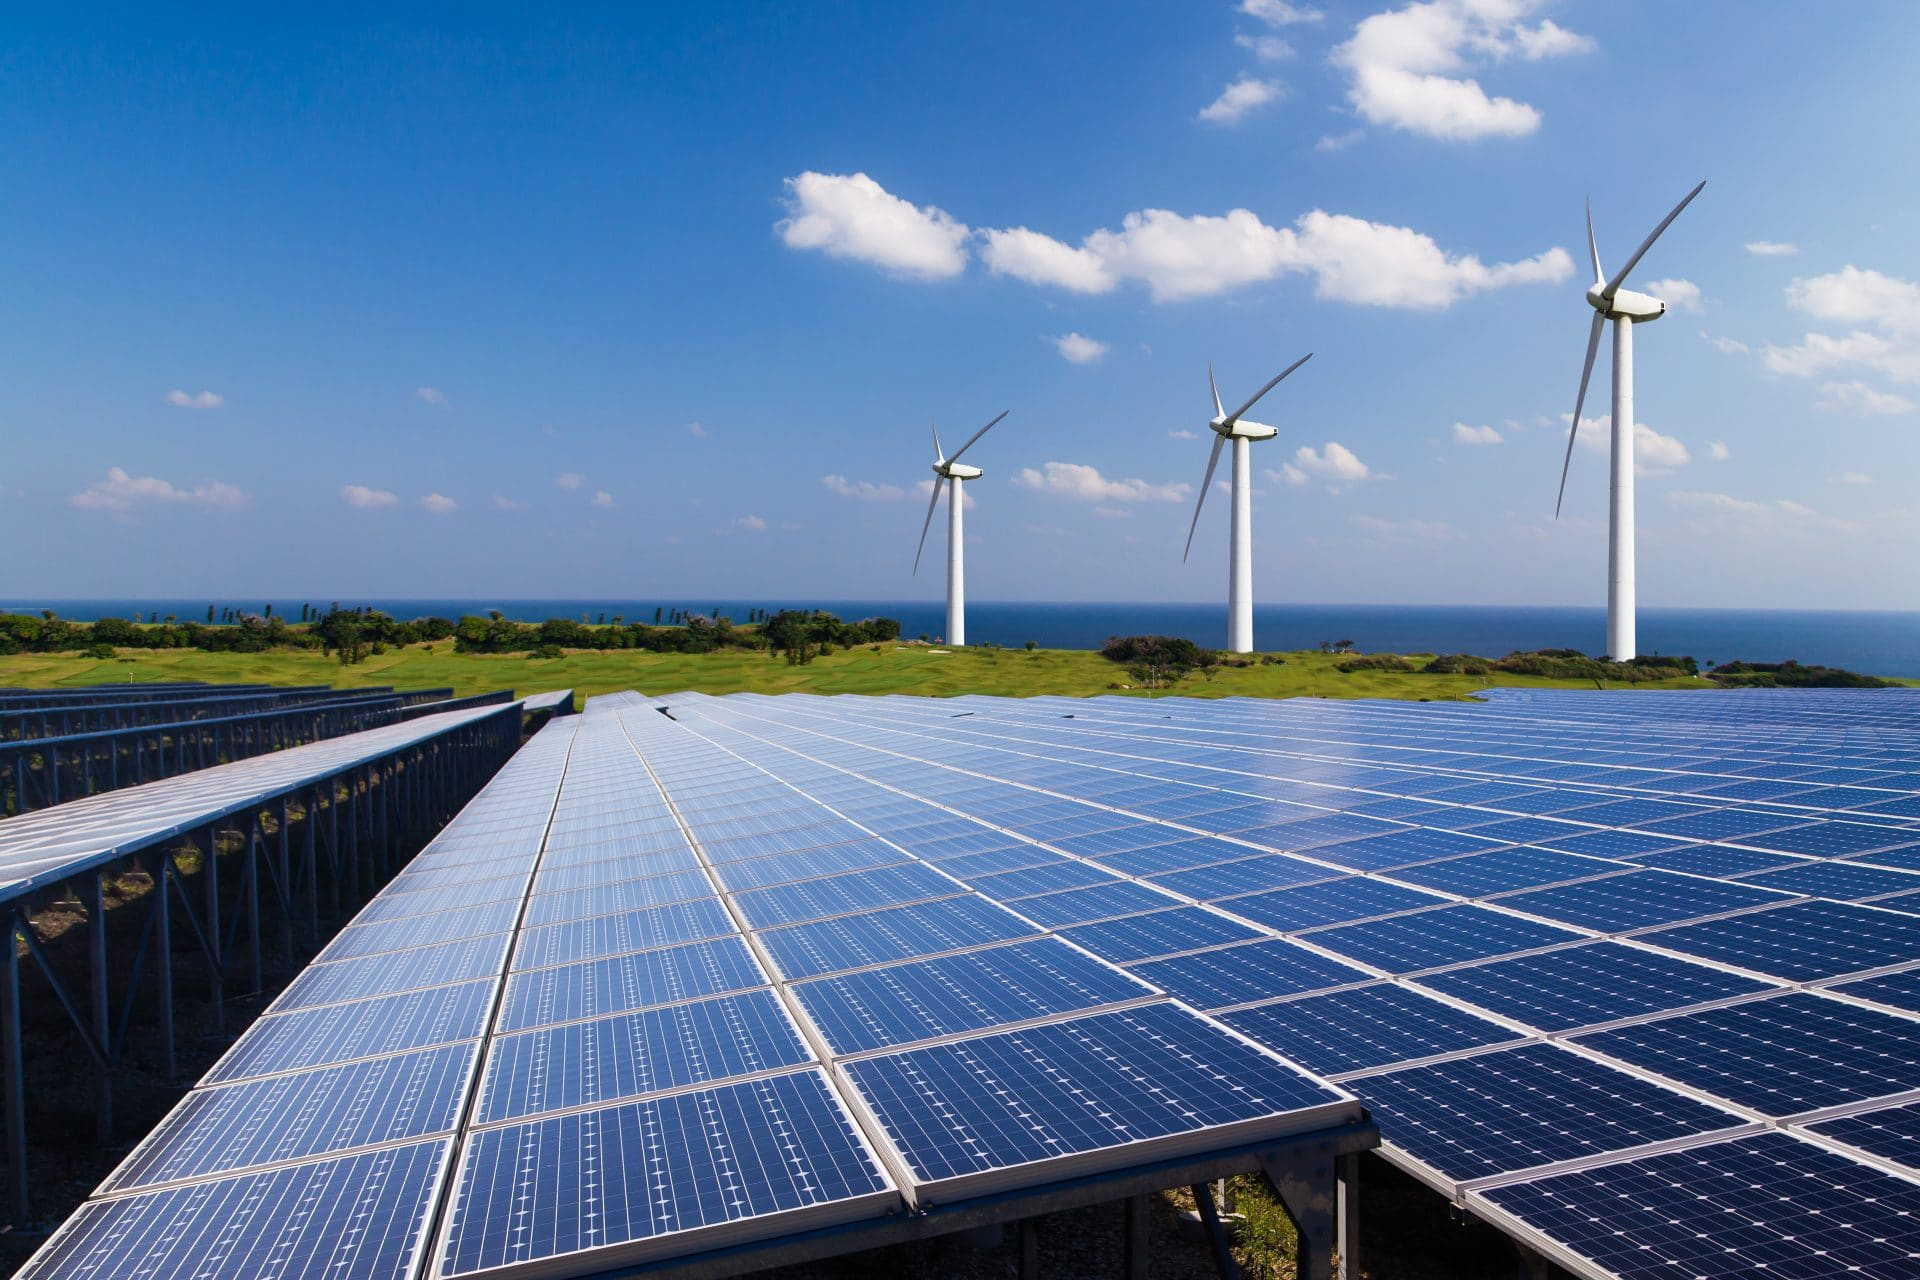 Promoting innovation for low-carbon technologies